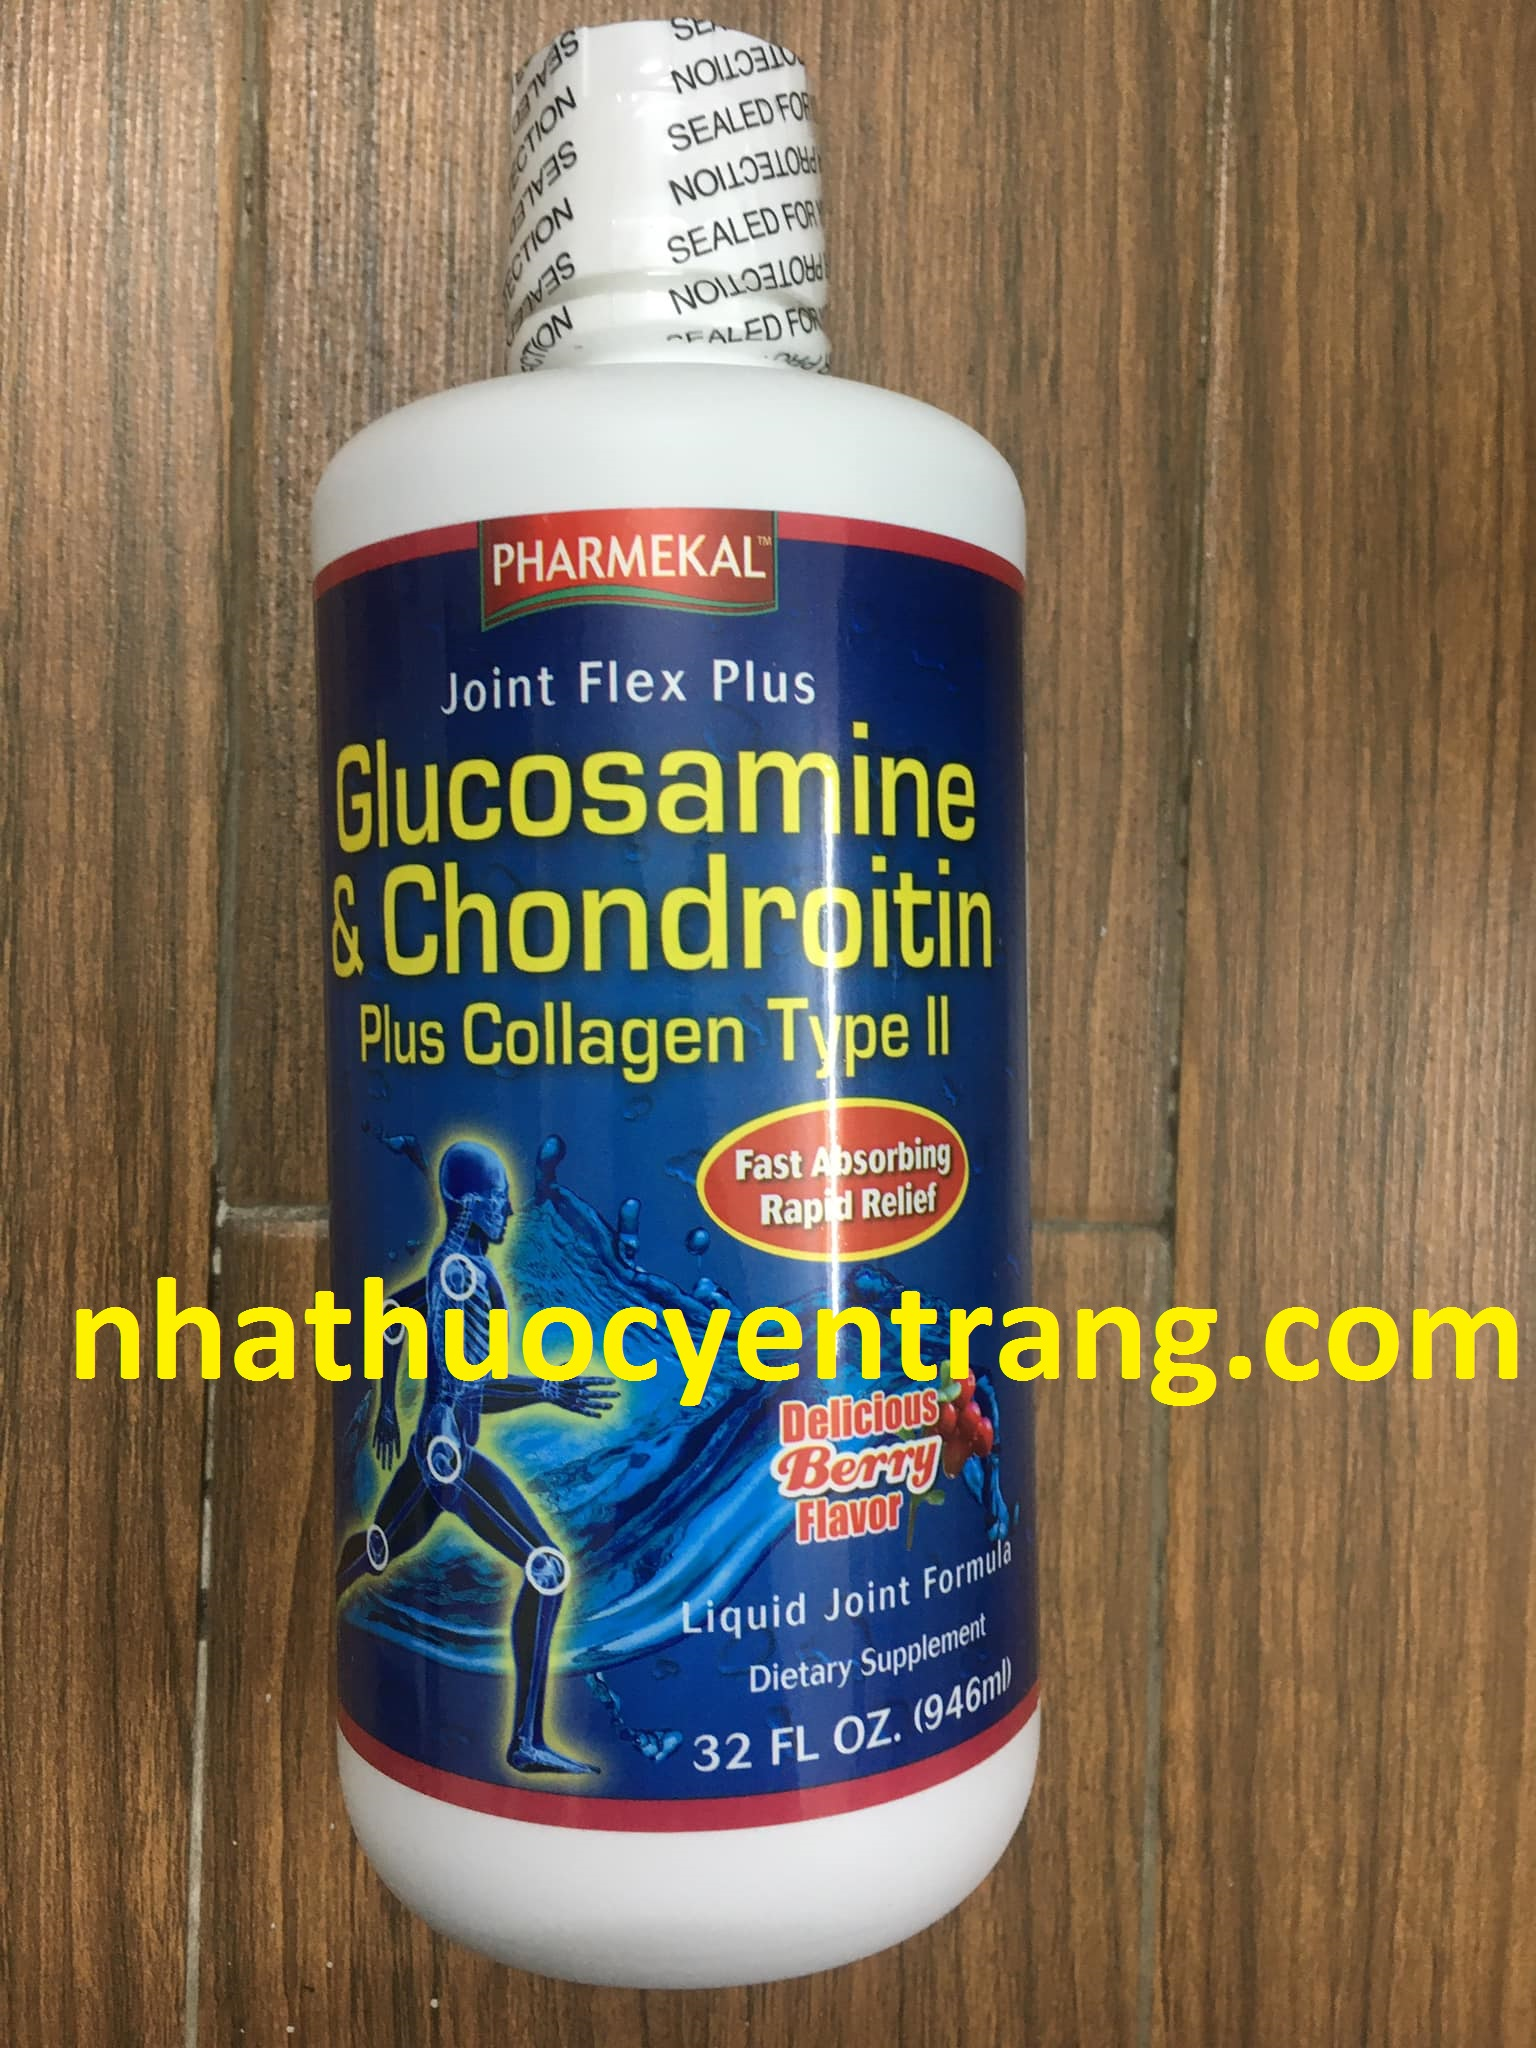 Pharmekal Joint Flex Plus Glucosamine & Chondroitin 946ml